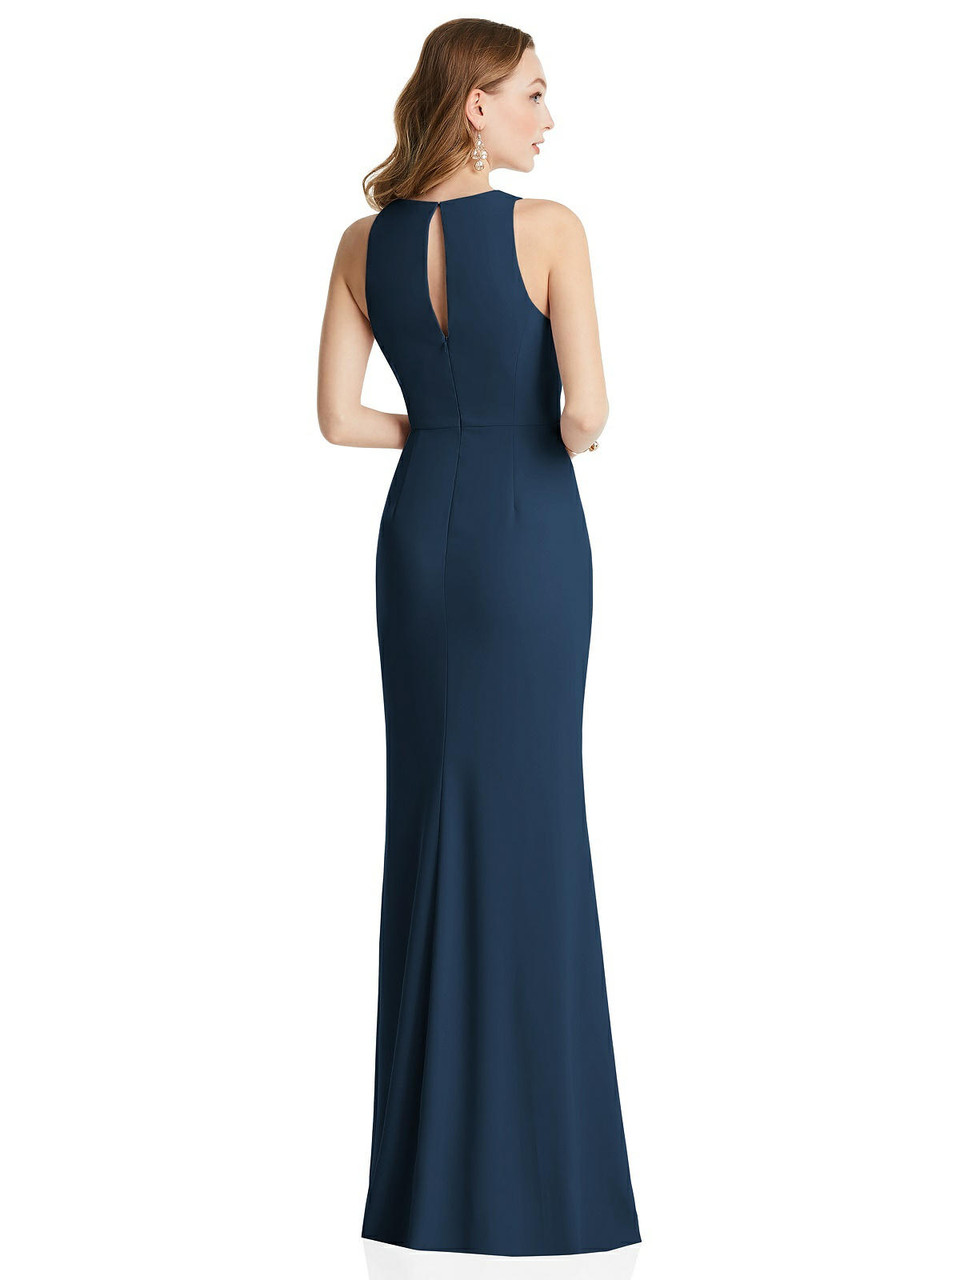 Dessy Collection Style 3081     Crepe - Halter Maxi Dress with Cascade Ruffle Slit